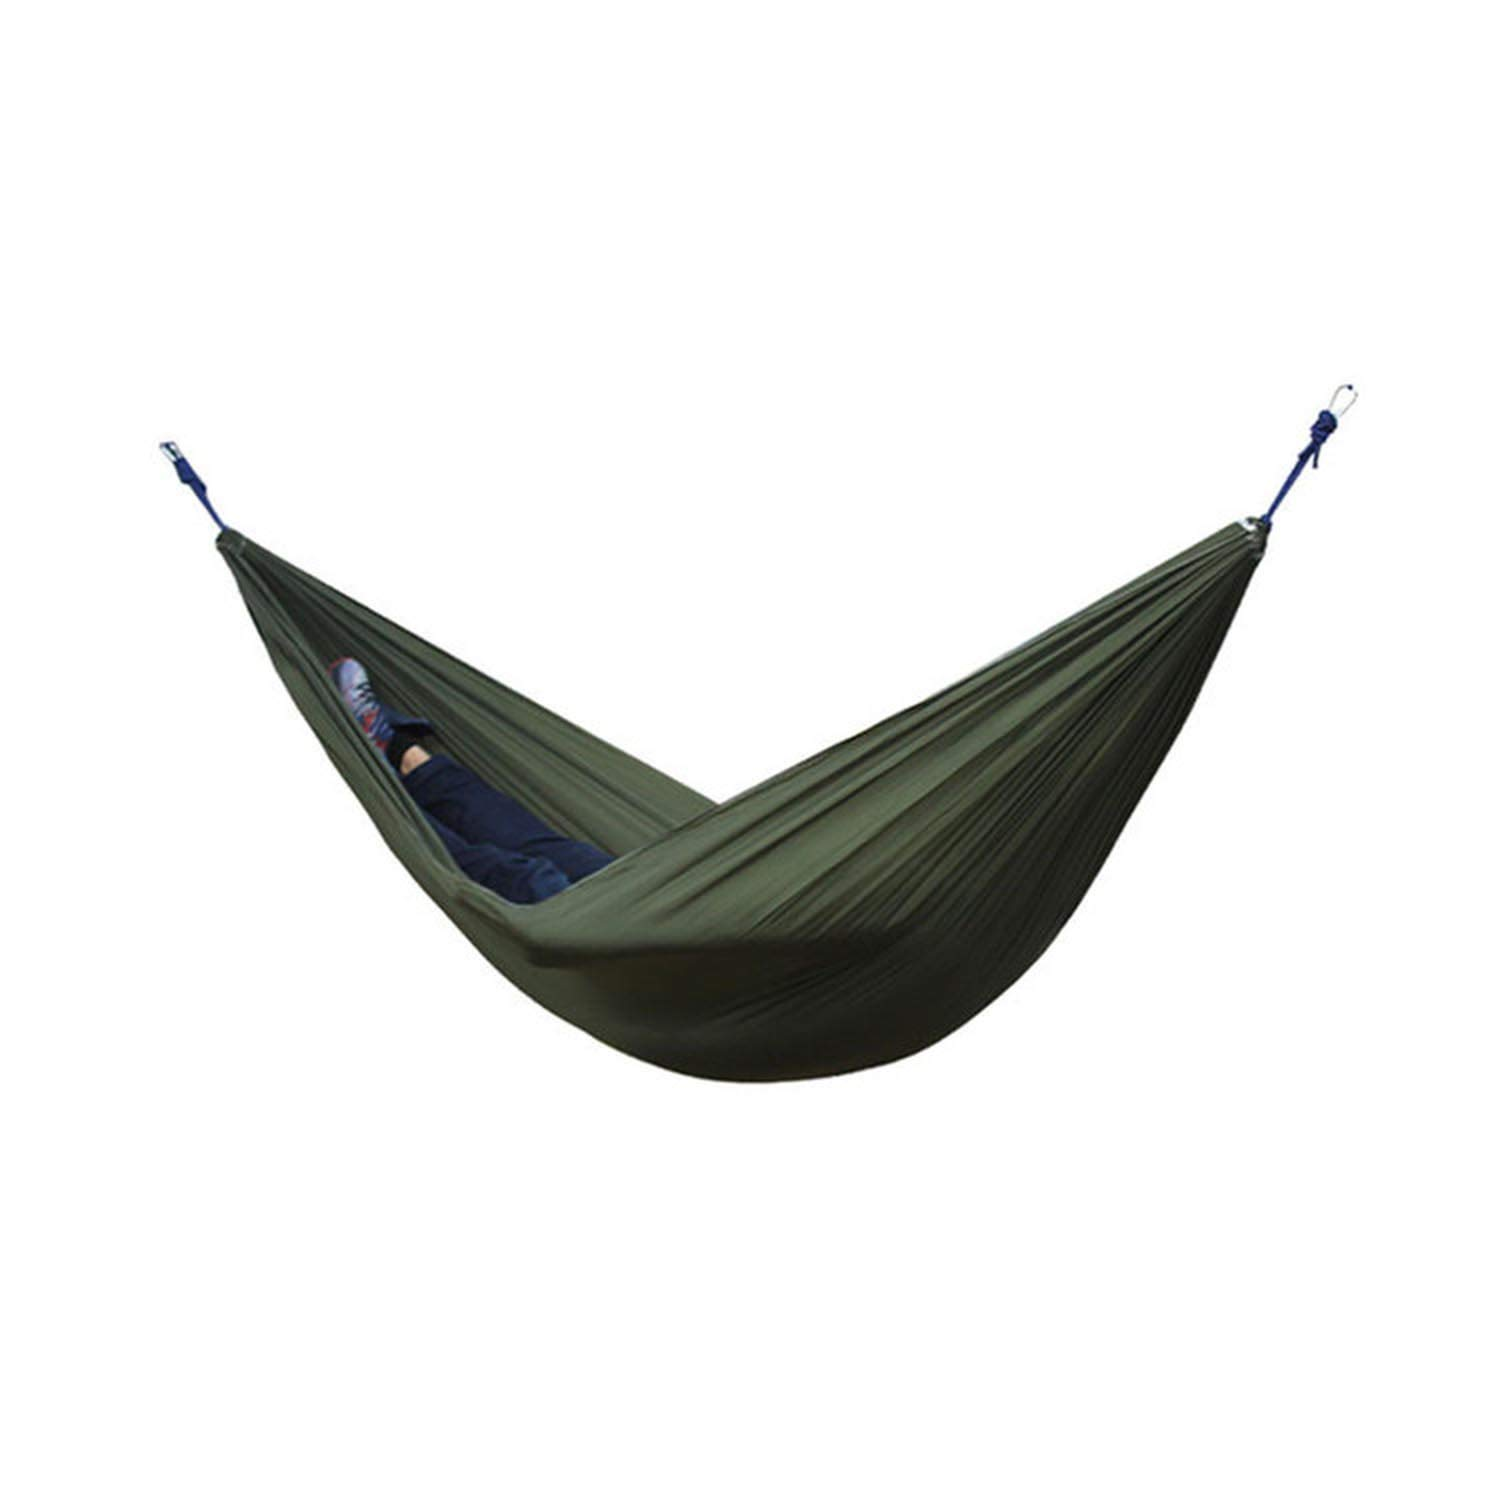 Army green 18 Single Double Hammock Adult Outdoor Backpacking Travel Survival Hunting Sleeping Bed Portable with 2 Straps 2 Carabiner